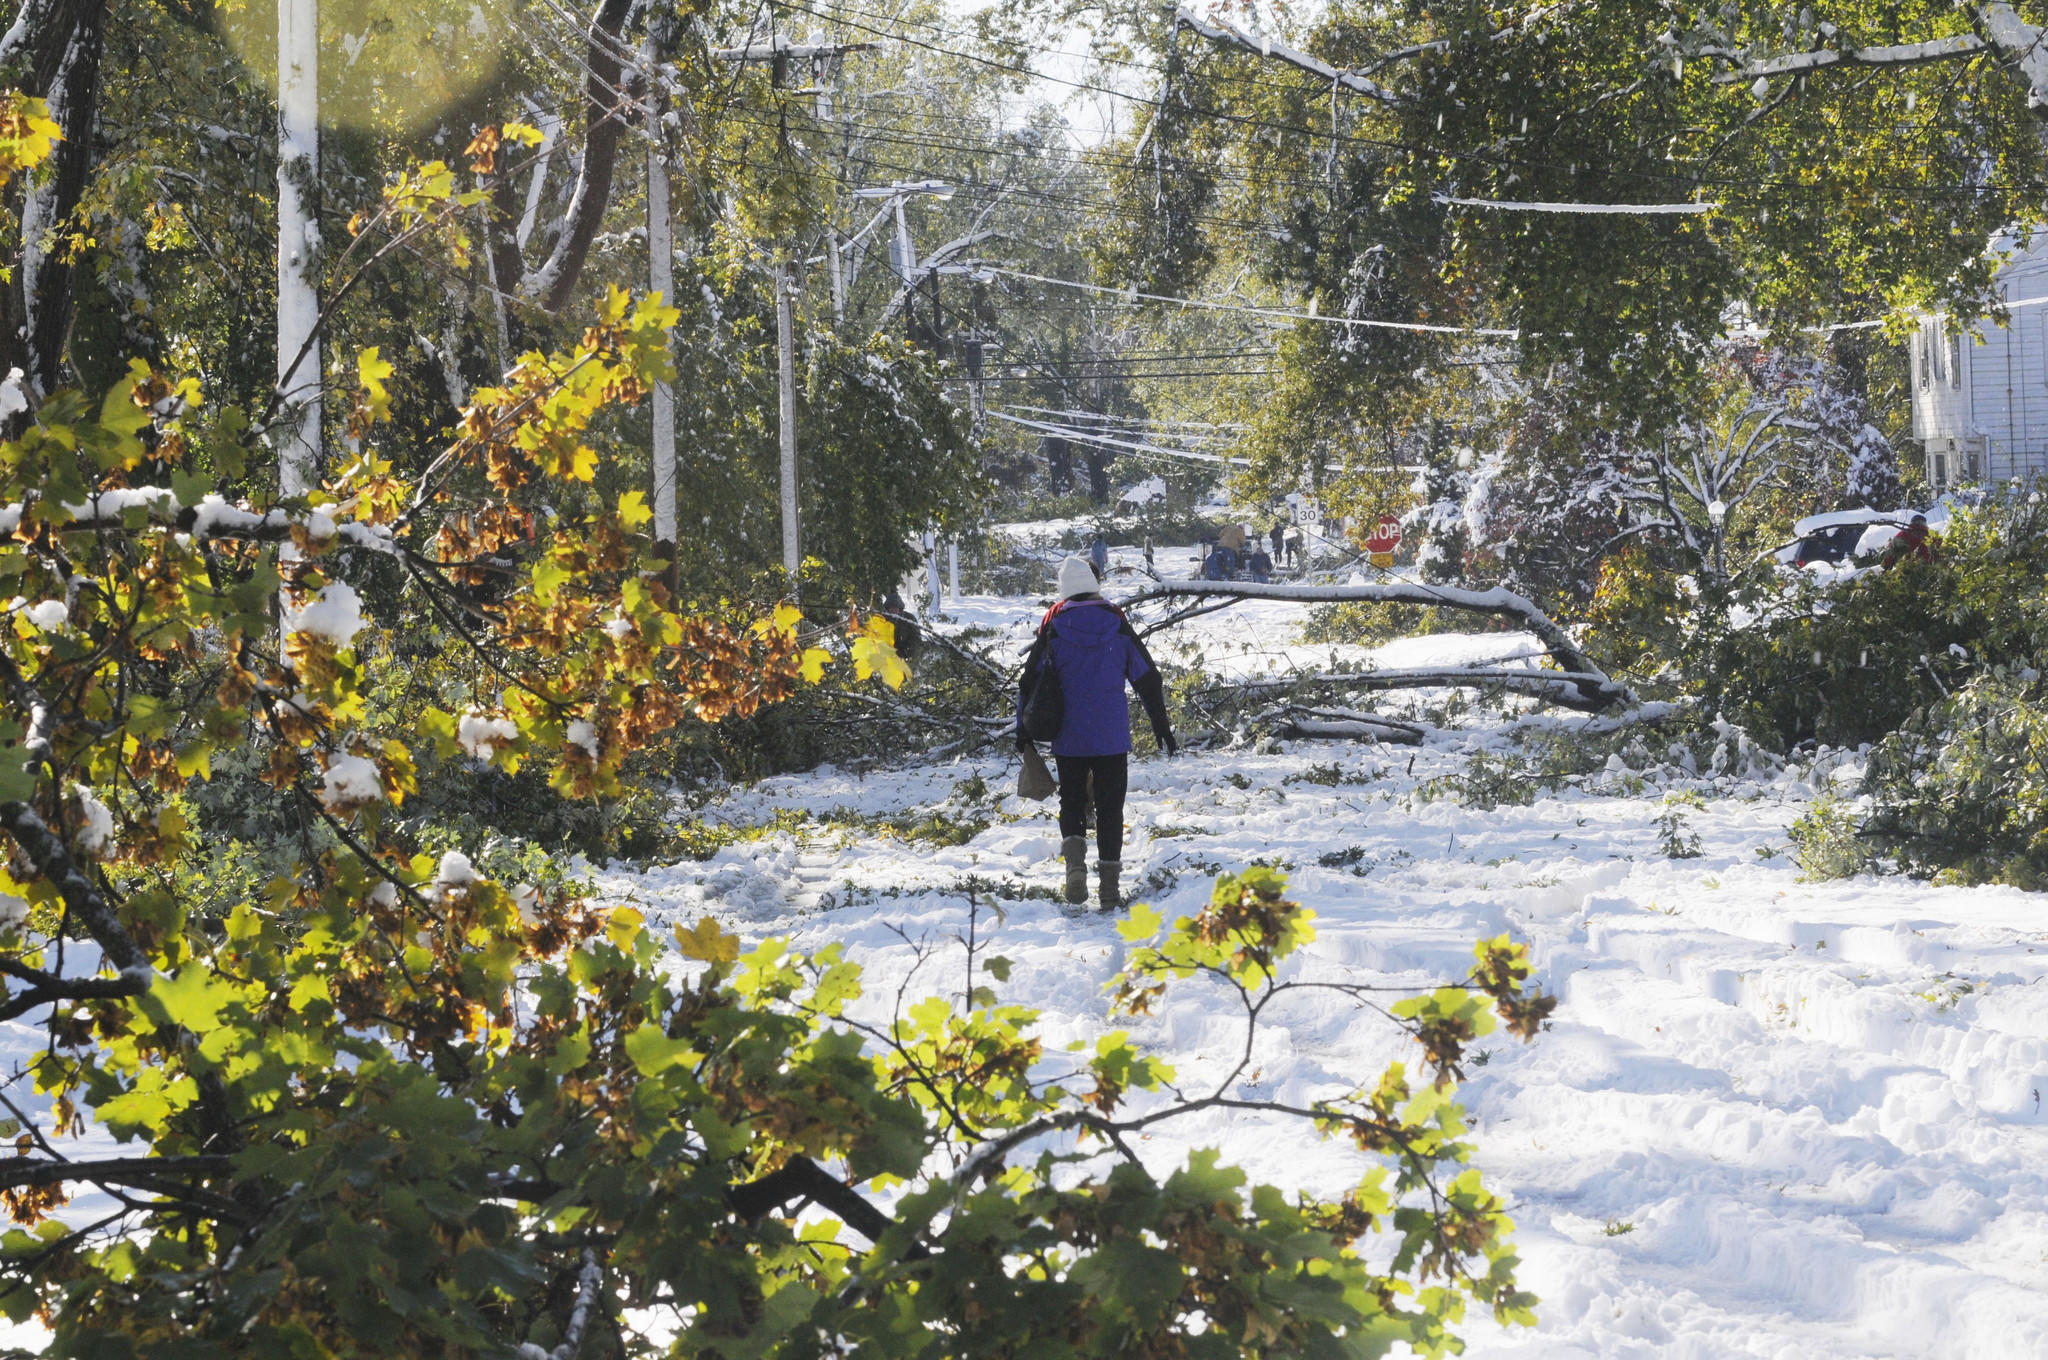 Damage like that pictures, on Four Mile Road in West Hartford, caused by the October 2011 ice storm, could become more frequent as the climate changes.